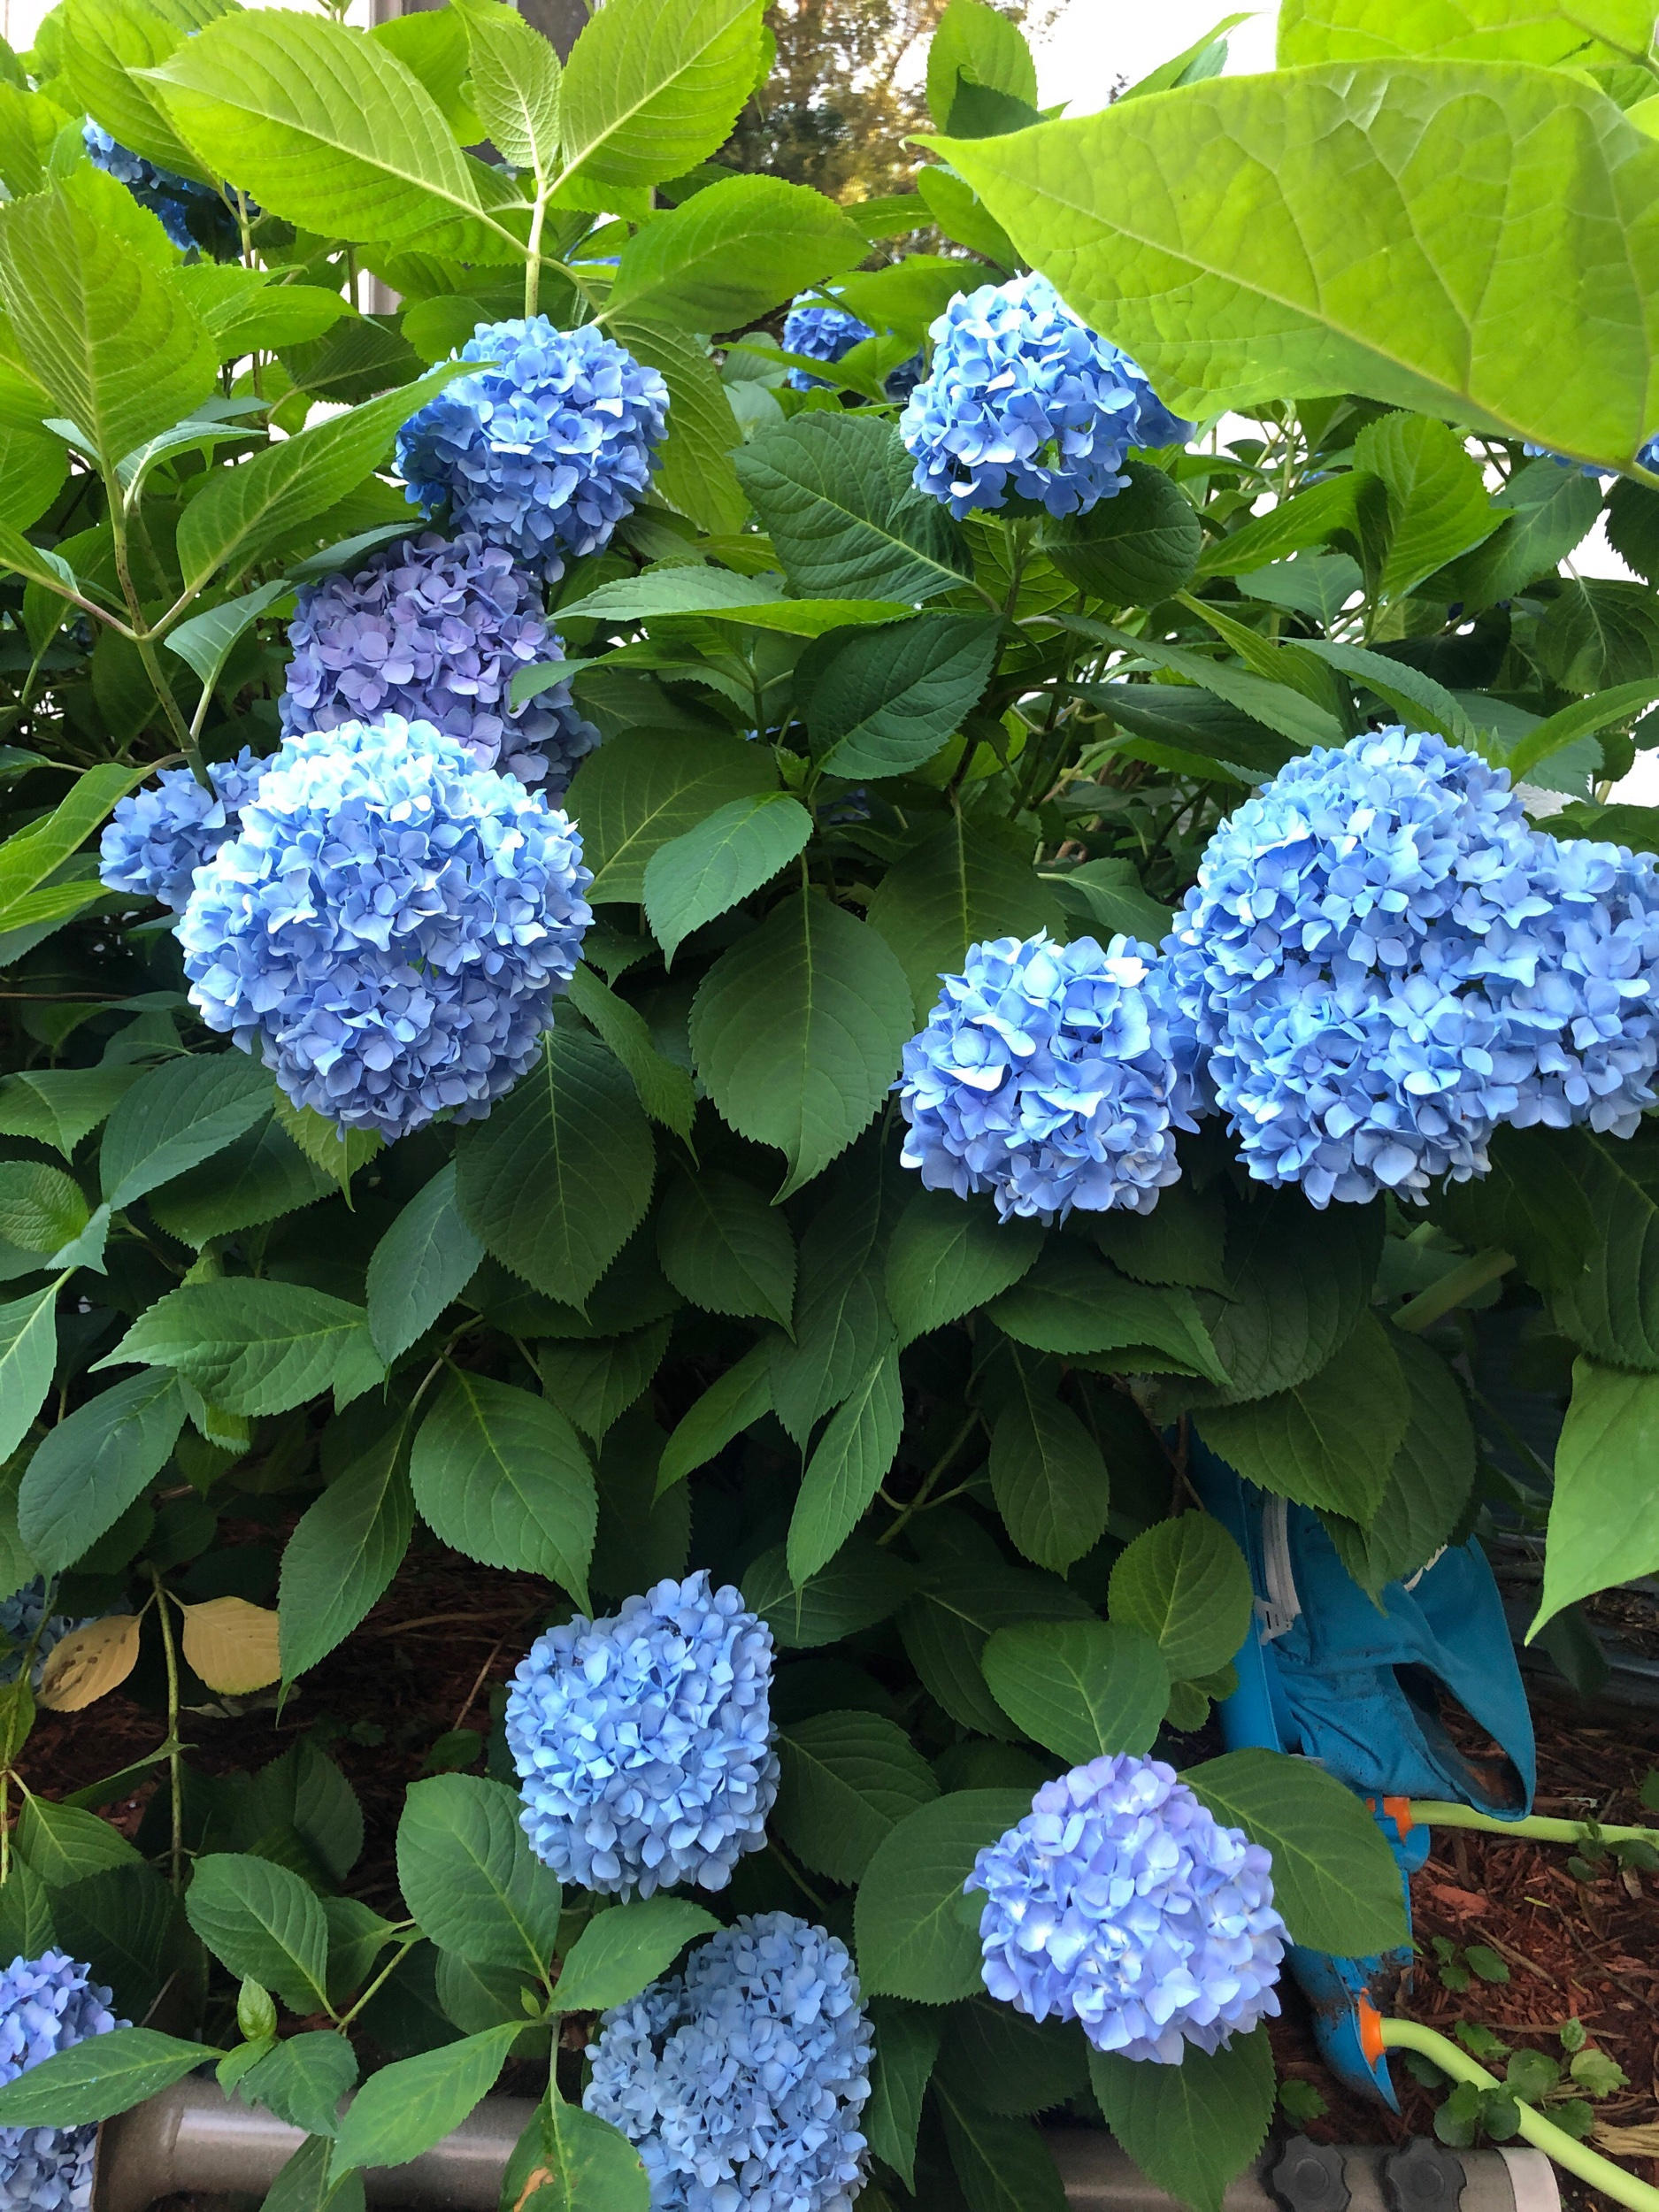 Our summer hydrangeas in full bloom are <3333333